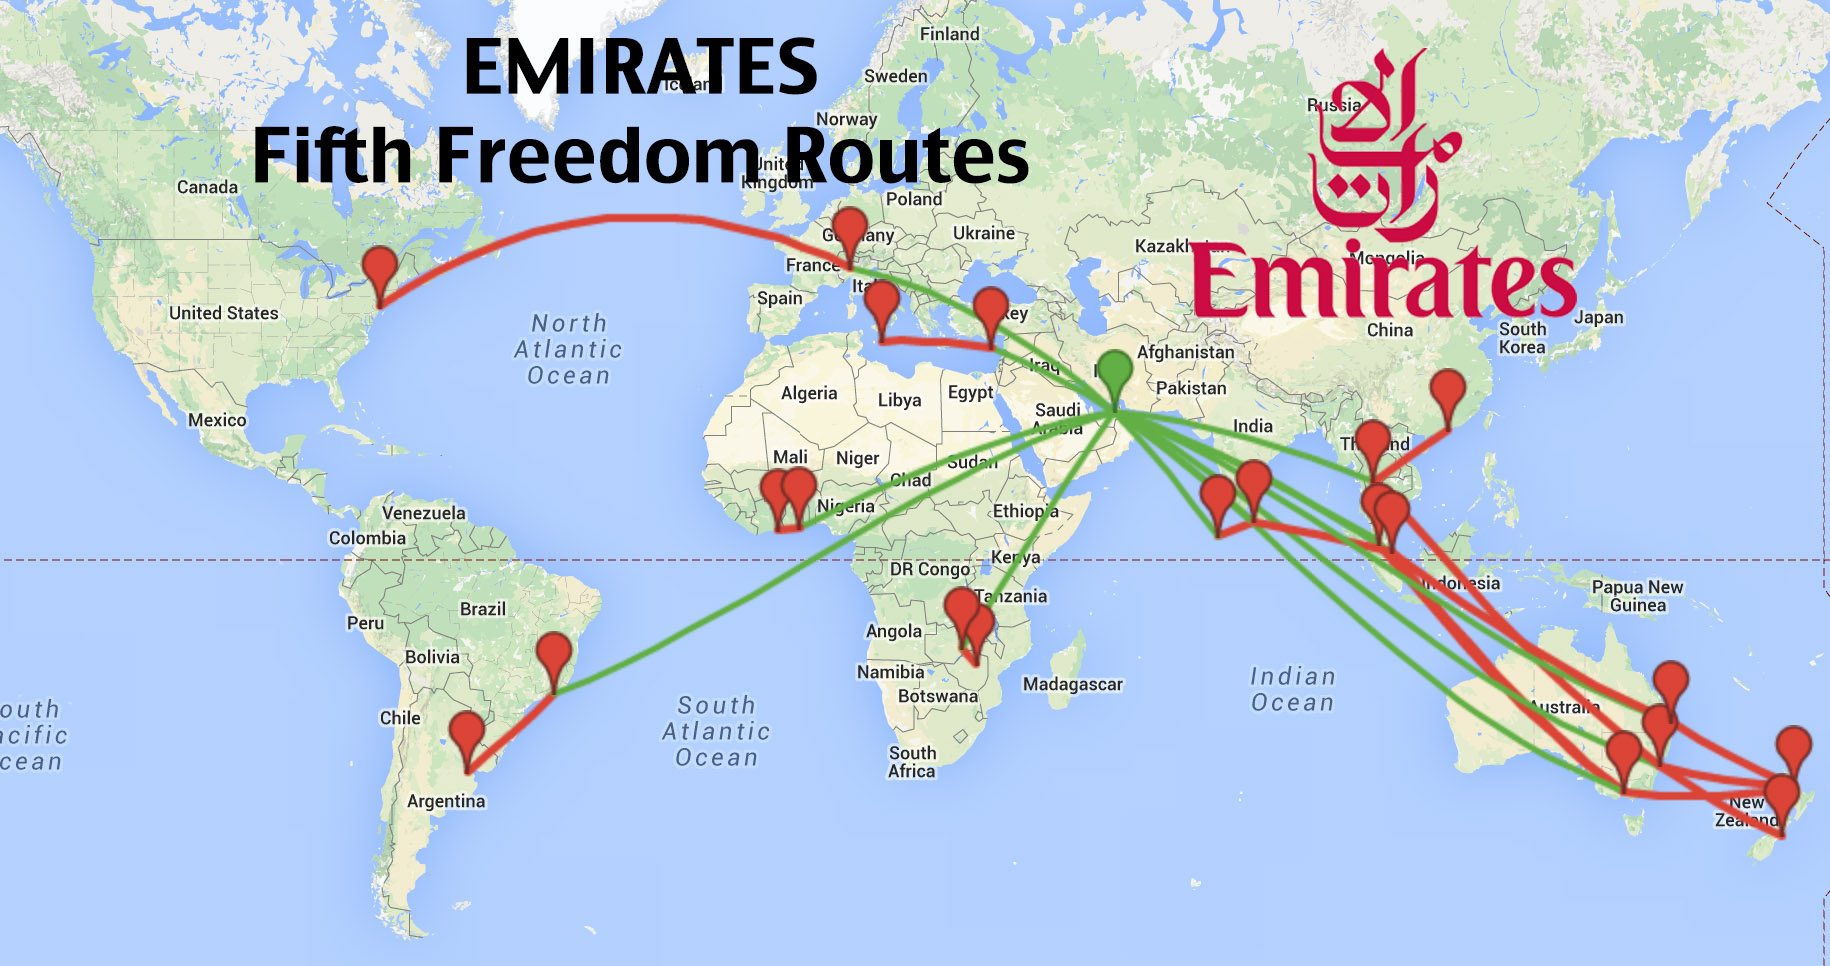 Top 16 Longest Emirates Fifth Freedom Routes Coming To A